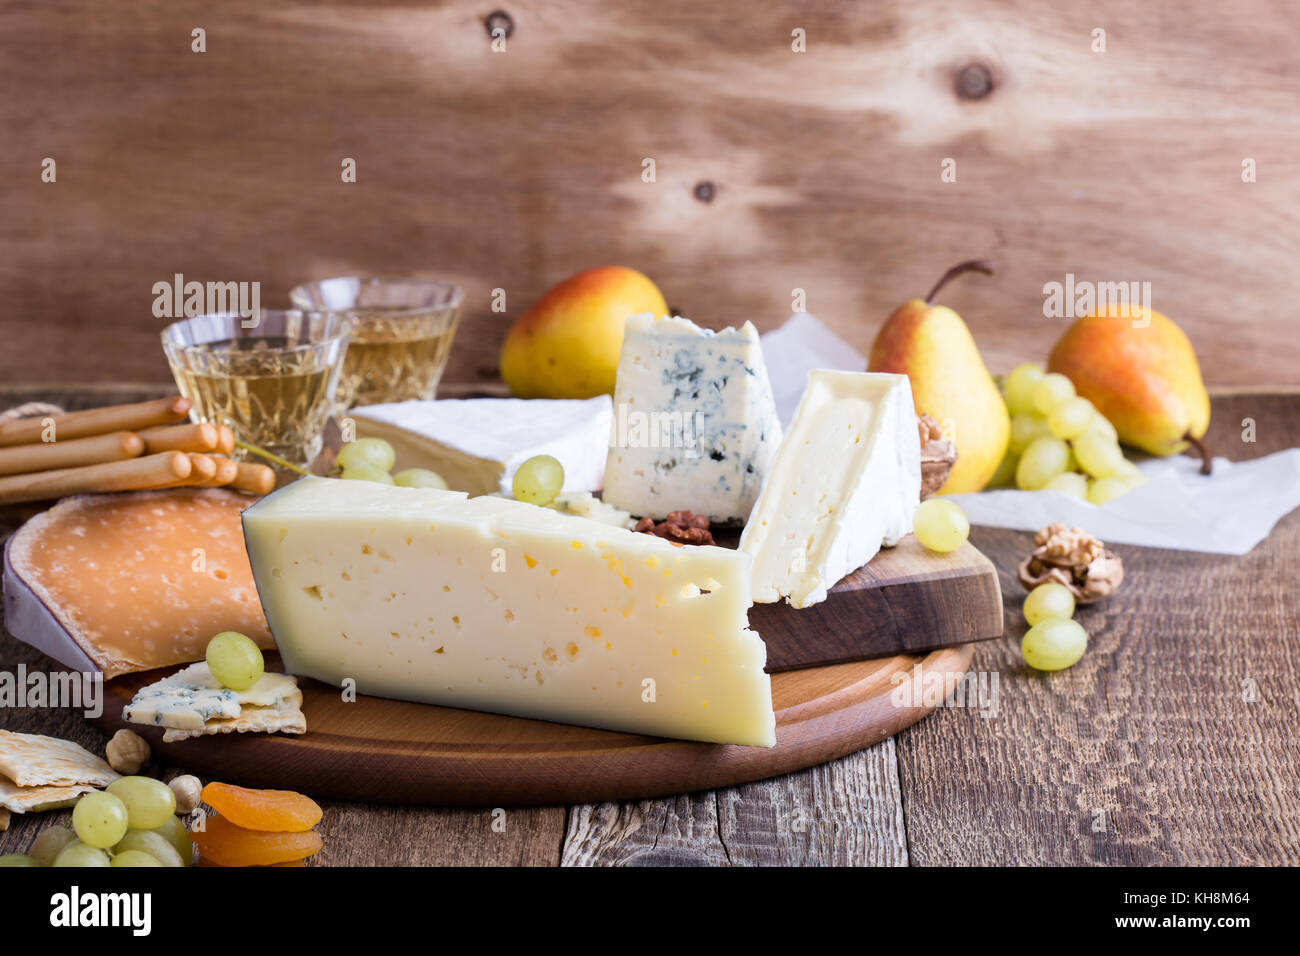 Asiago cheese. Cheese, fruit and wine wooden cutting board, delicious holiday appetizer on rustic table background - Stock Image